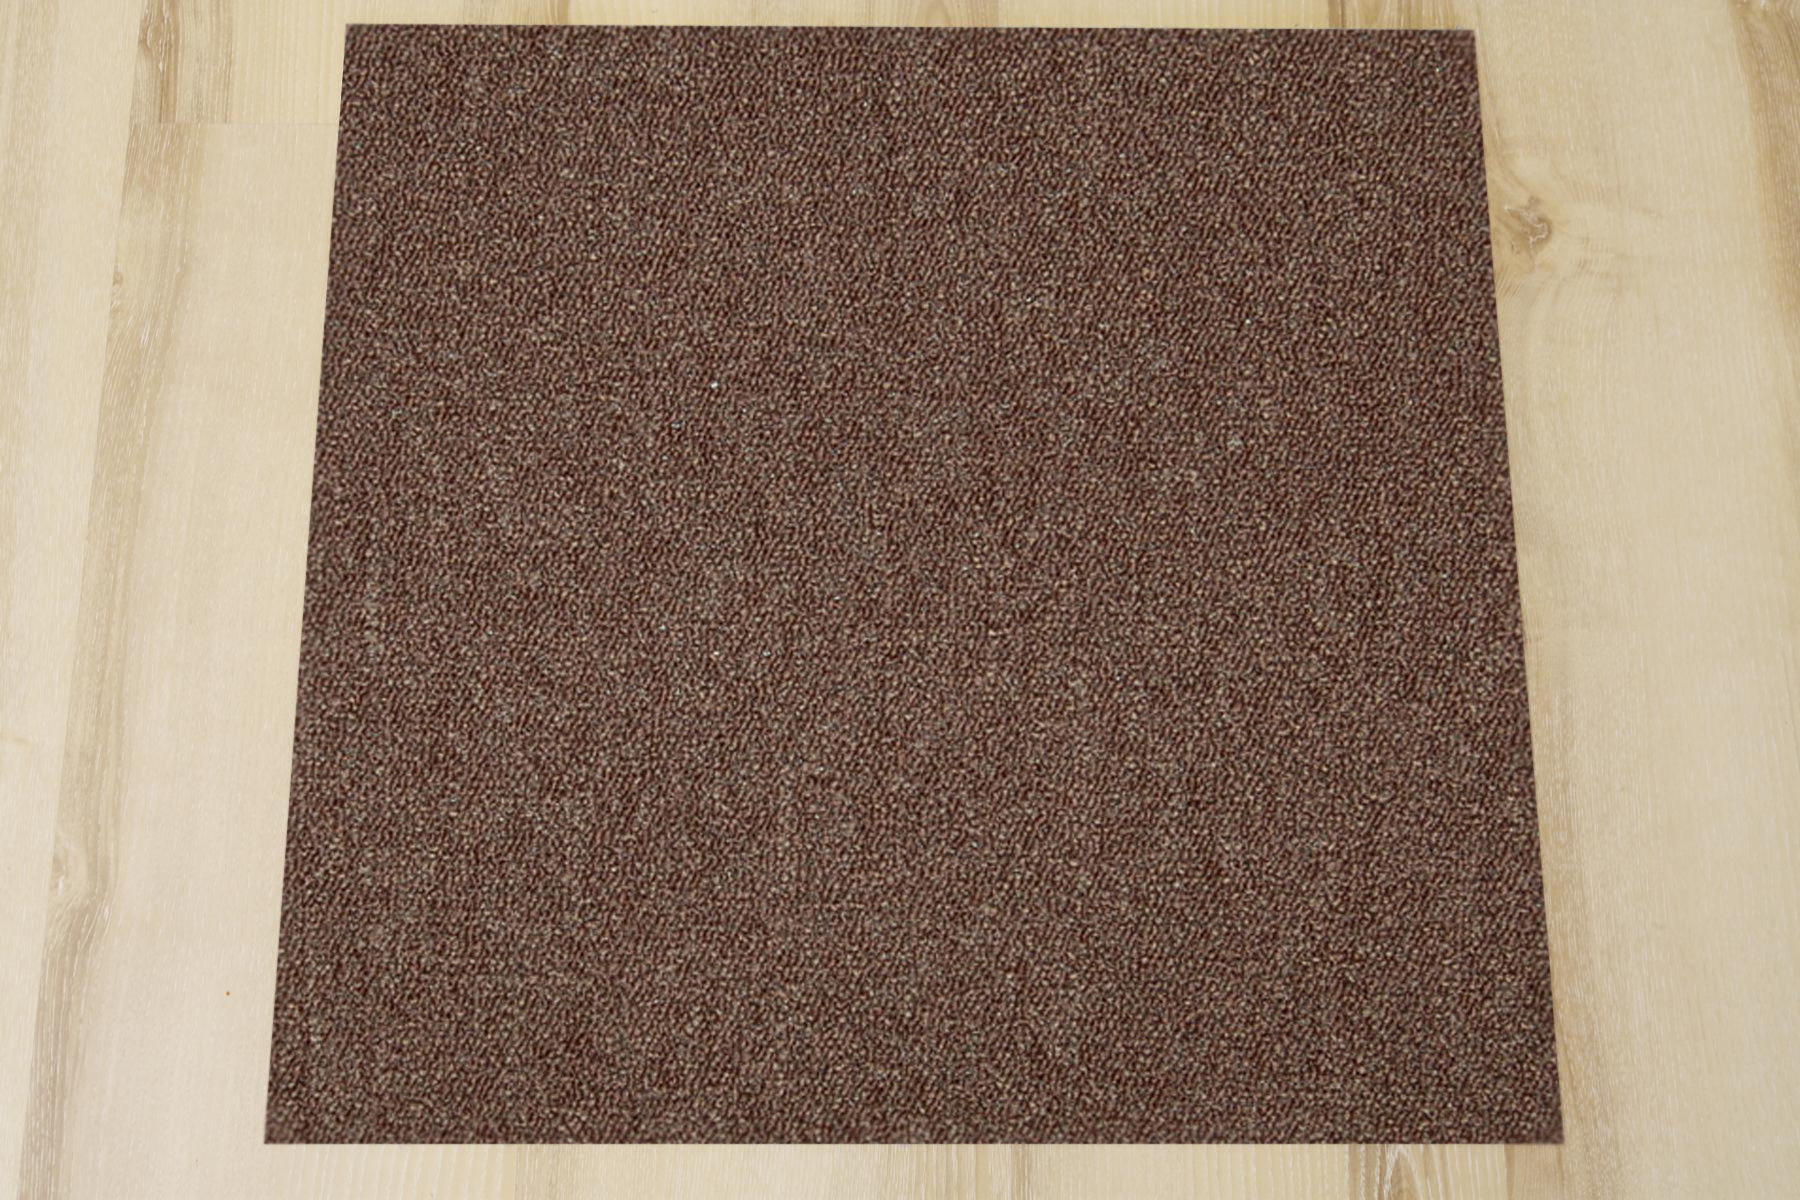 Moquette carrelage diva 50x50 cm b1 balta 822 marron c s1 for Carrelage 50x50